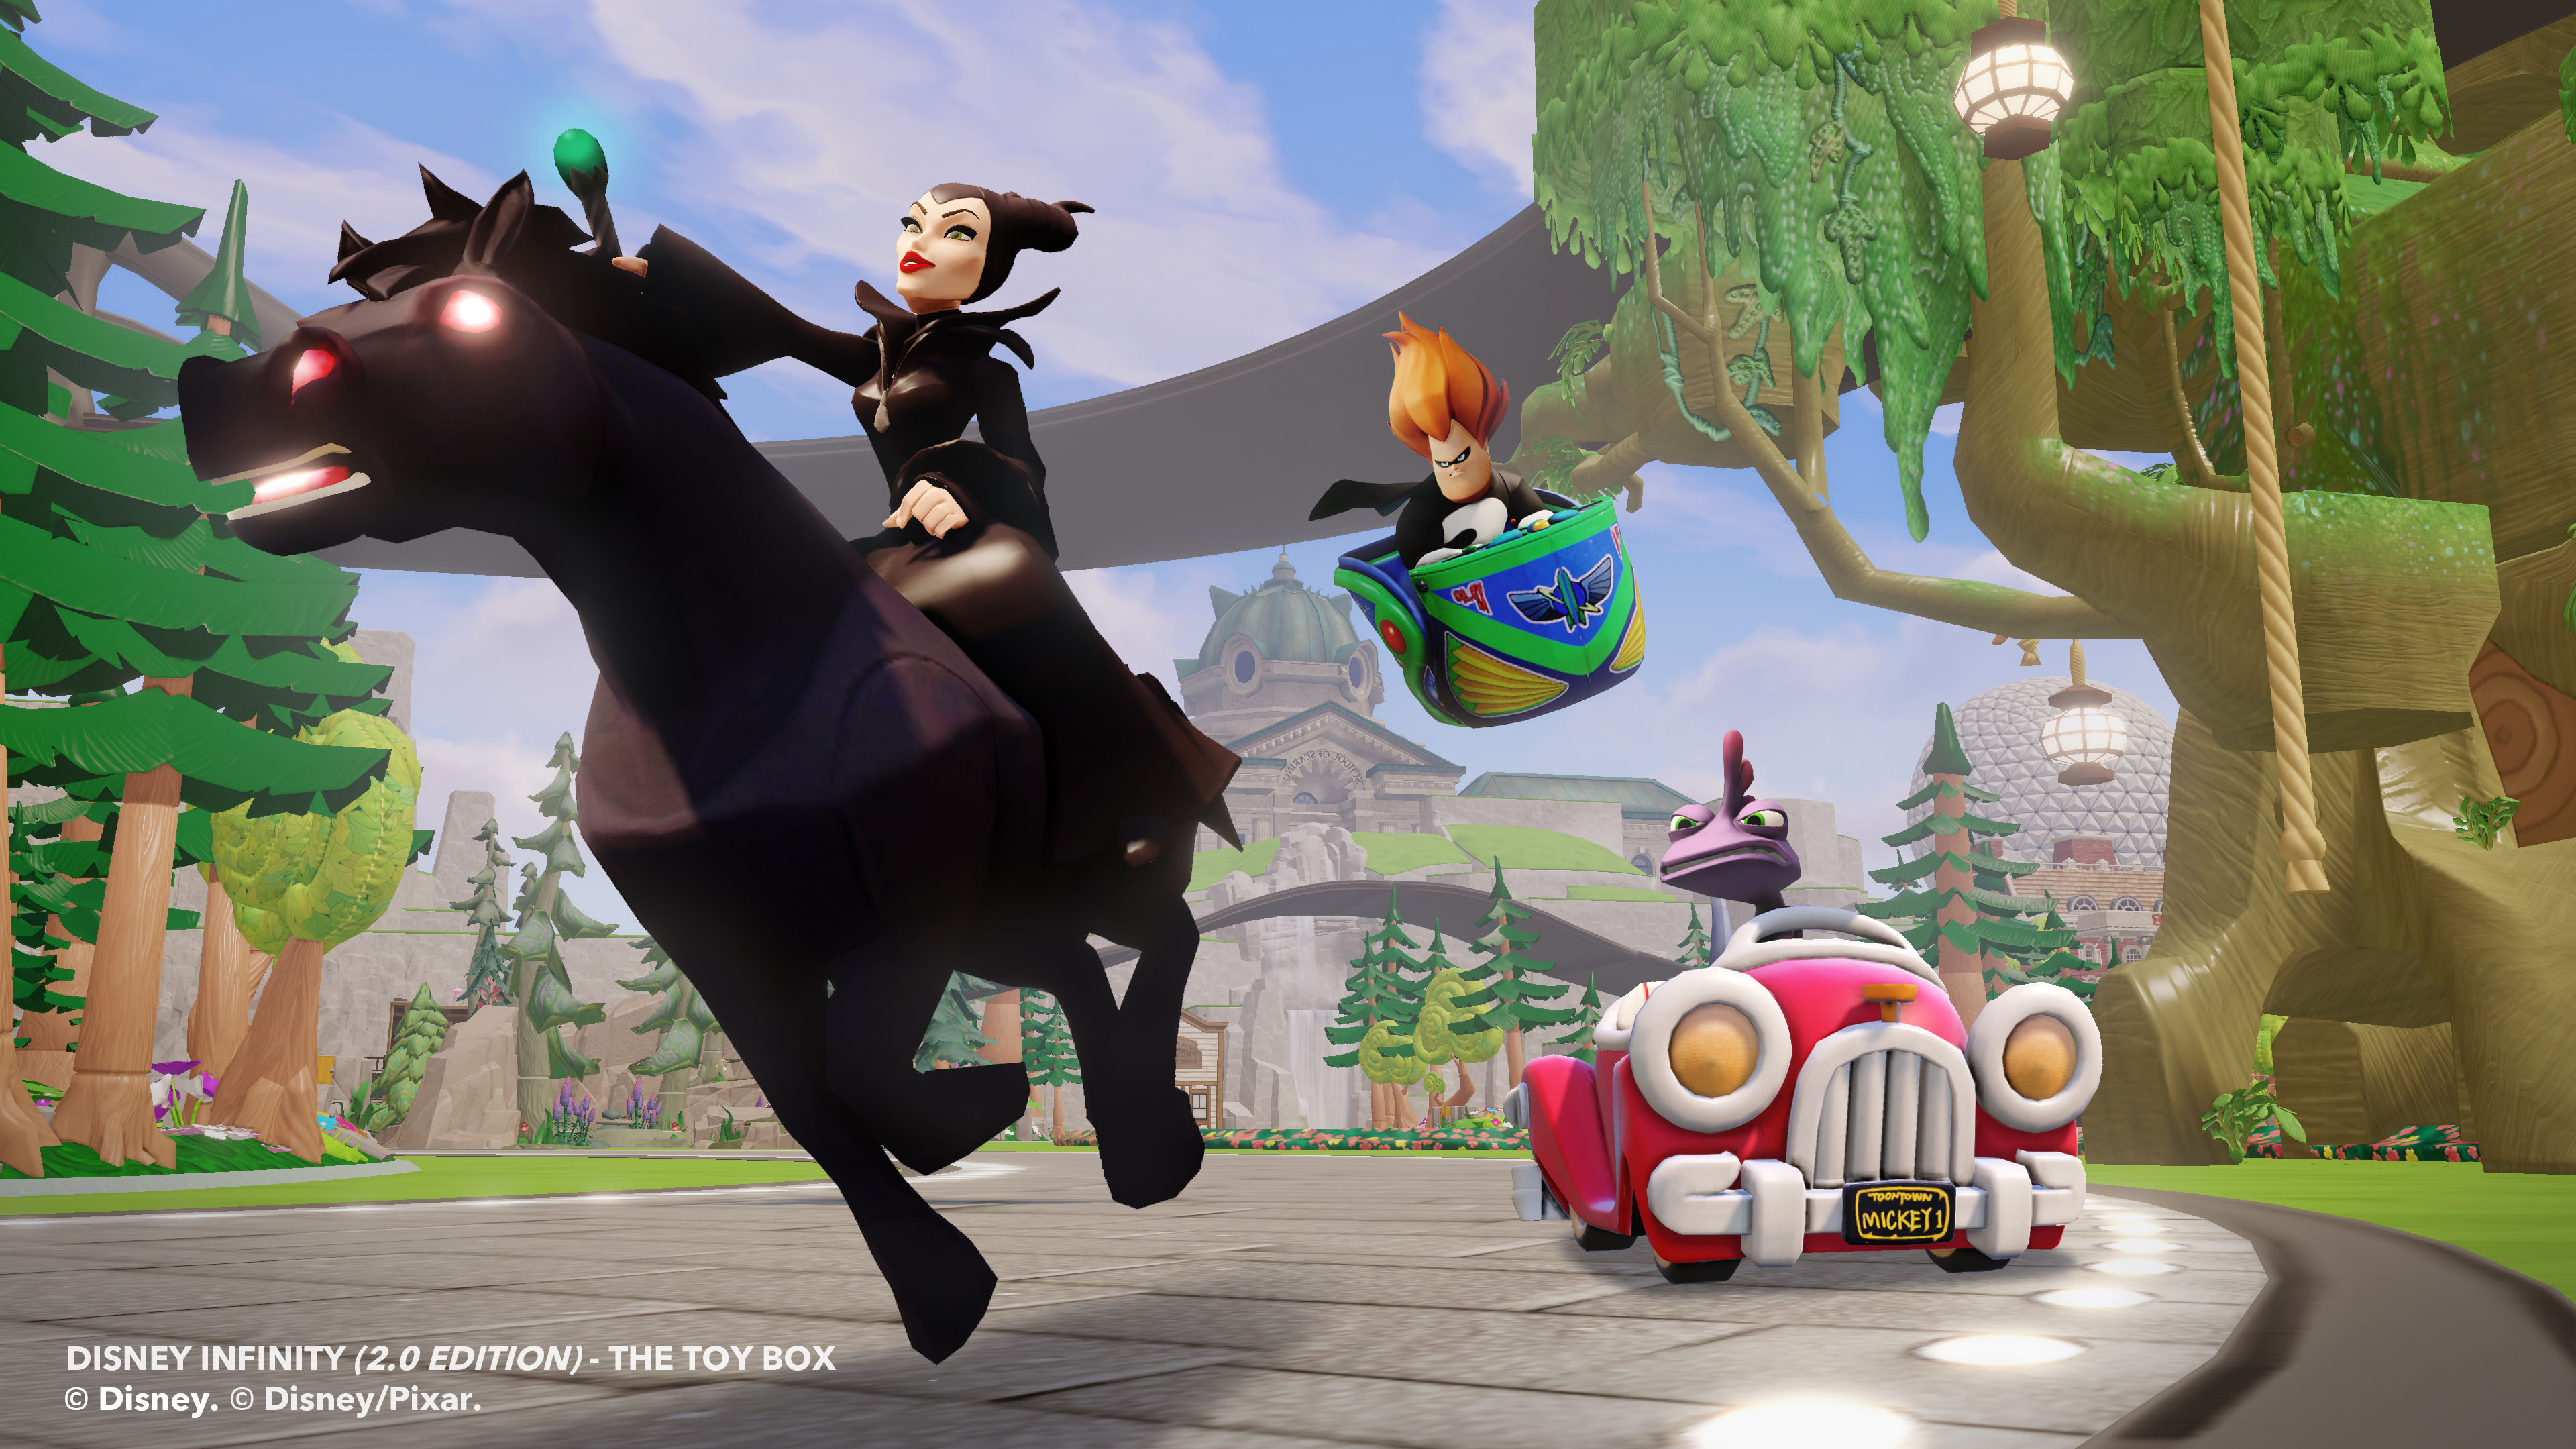 Merida and Maleficent on board for Disney Infinity 2